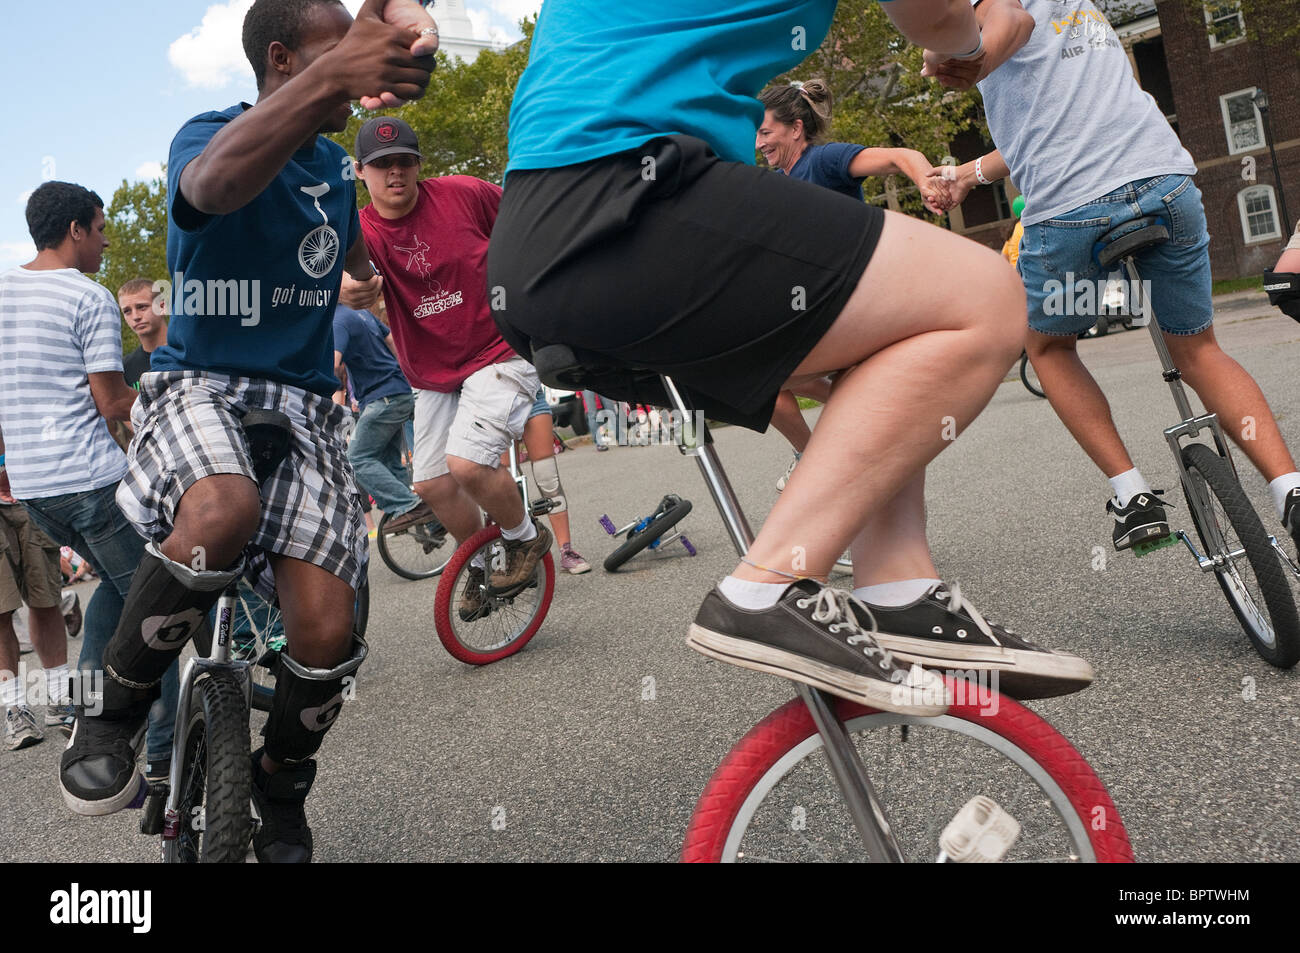 unicyclists-ride-in-a-circle-during-the-